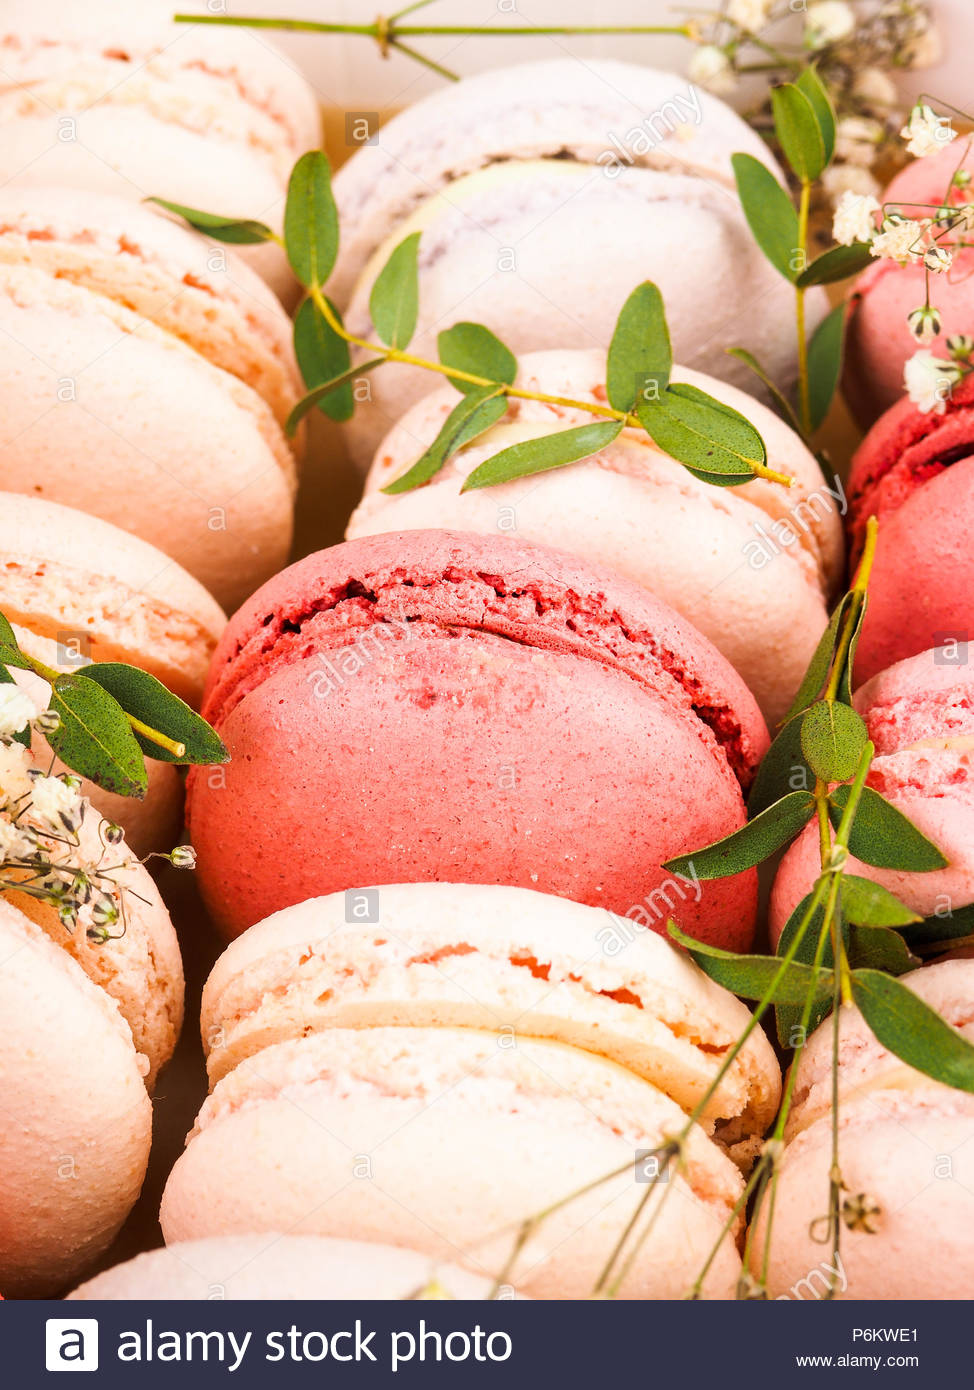 Colorful french macarons background close upDifferent colorful 974x1390